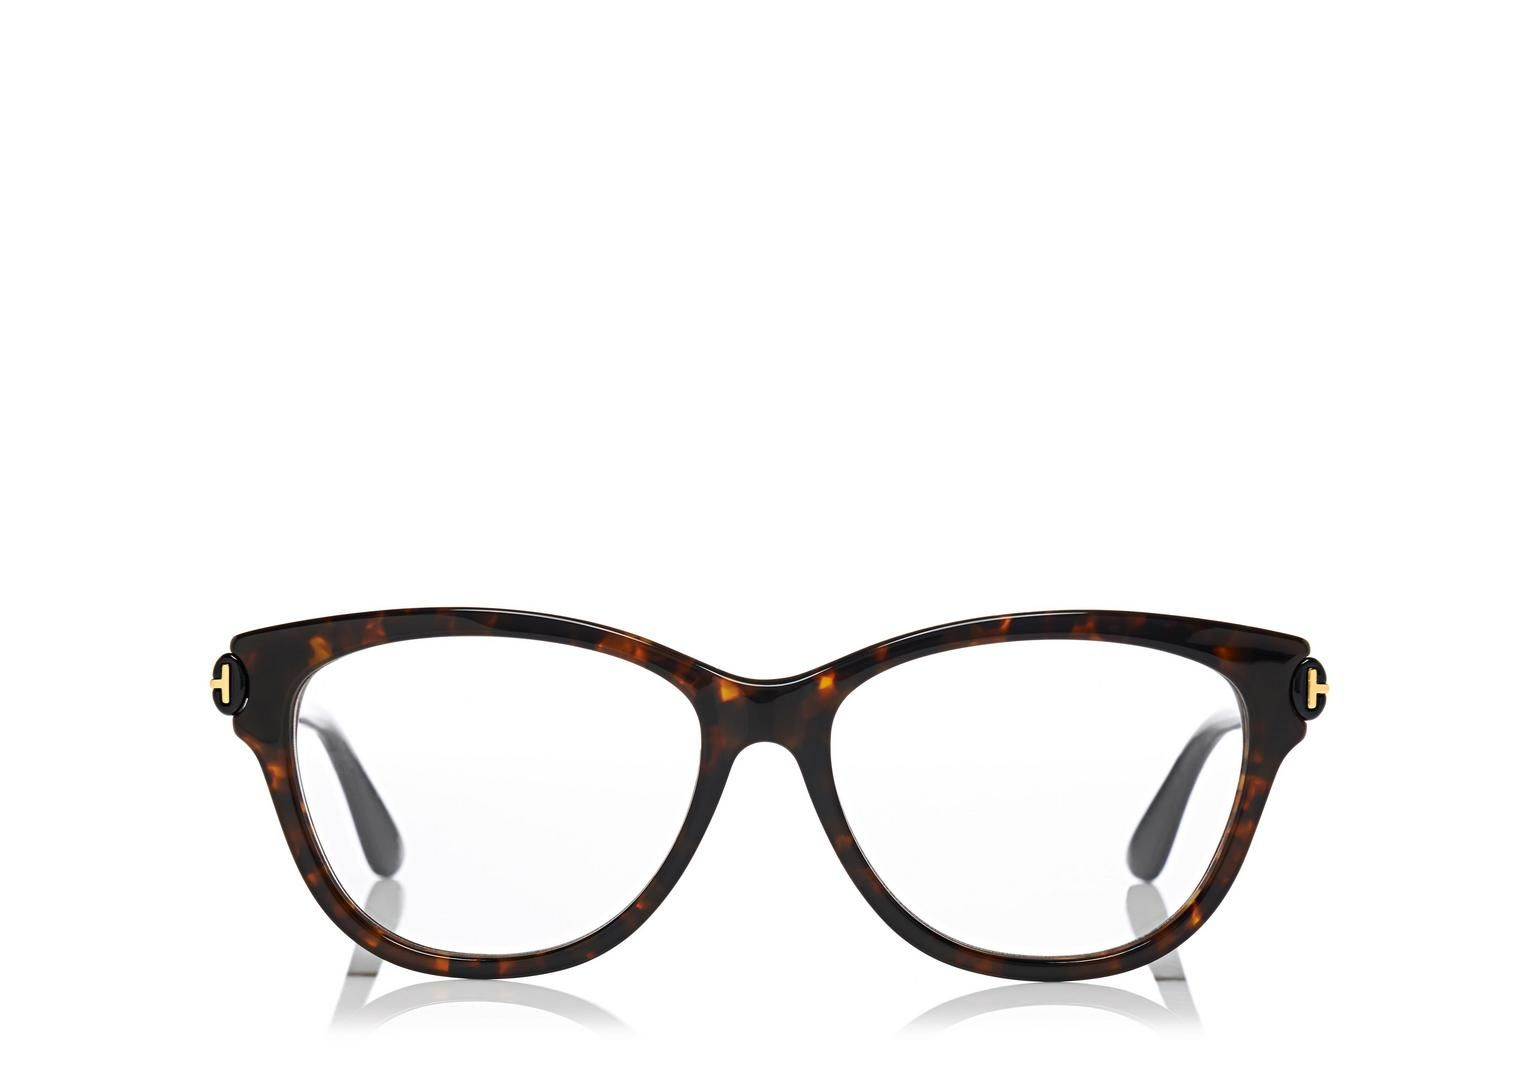 Soft Square Optical Frame $325 Tom Ford USA | Accesories | Pinterest